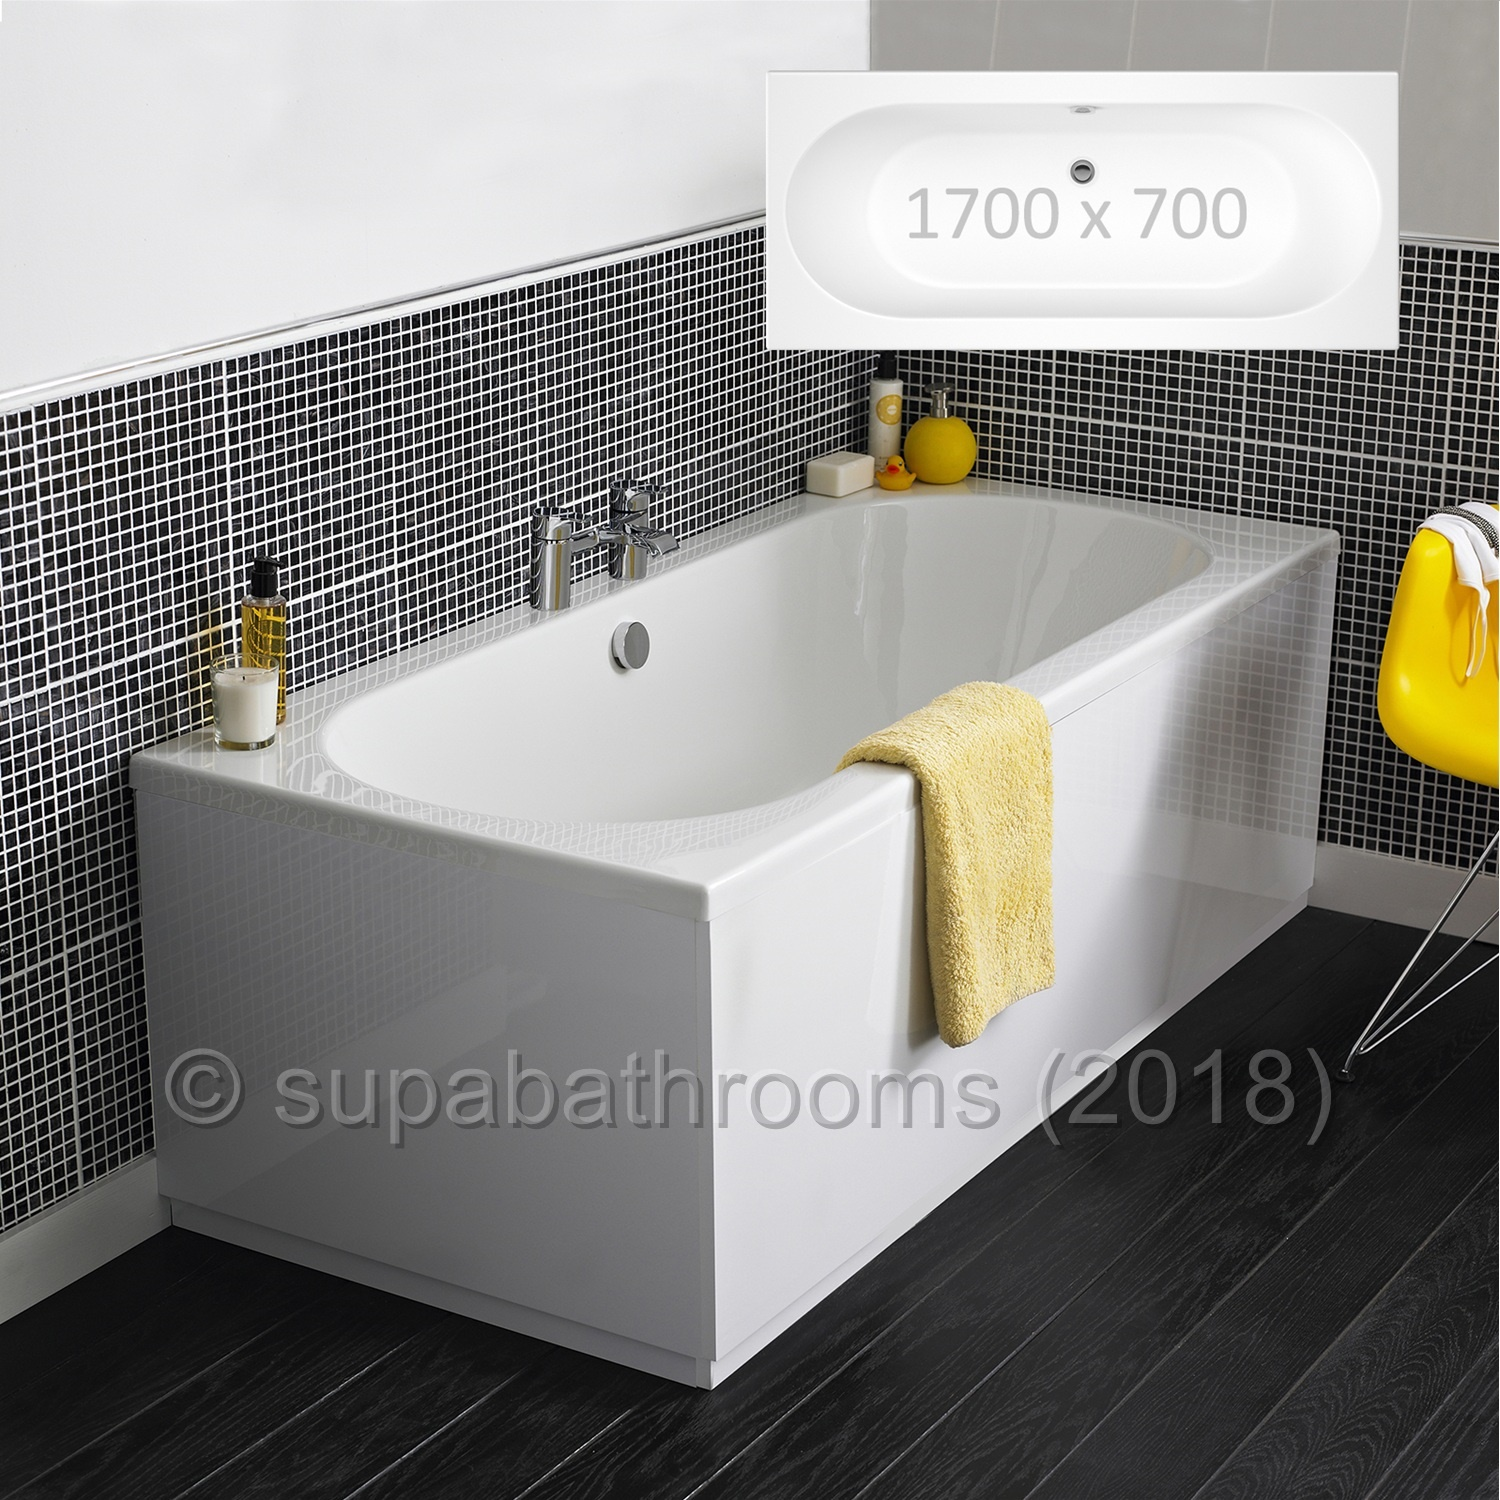 1700x700 Otley Double Ended Fibreglass Encapsulated Acrylic Bath ...